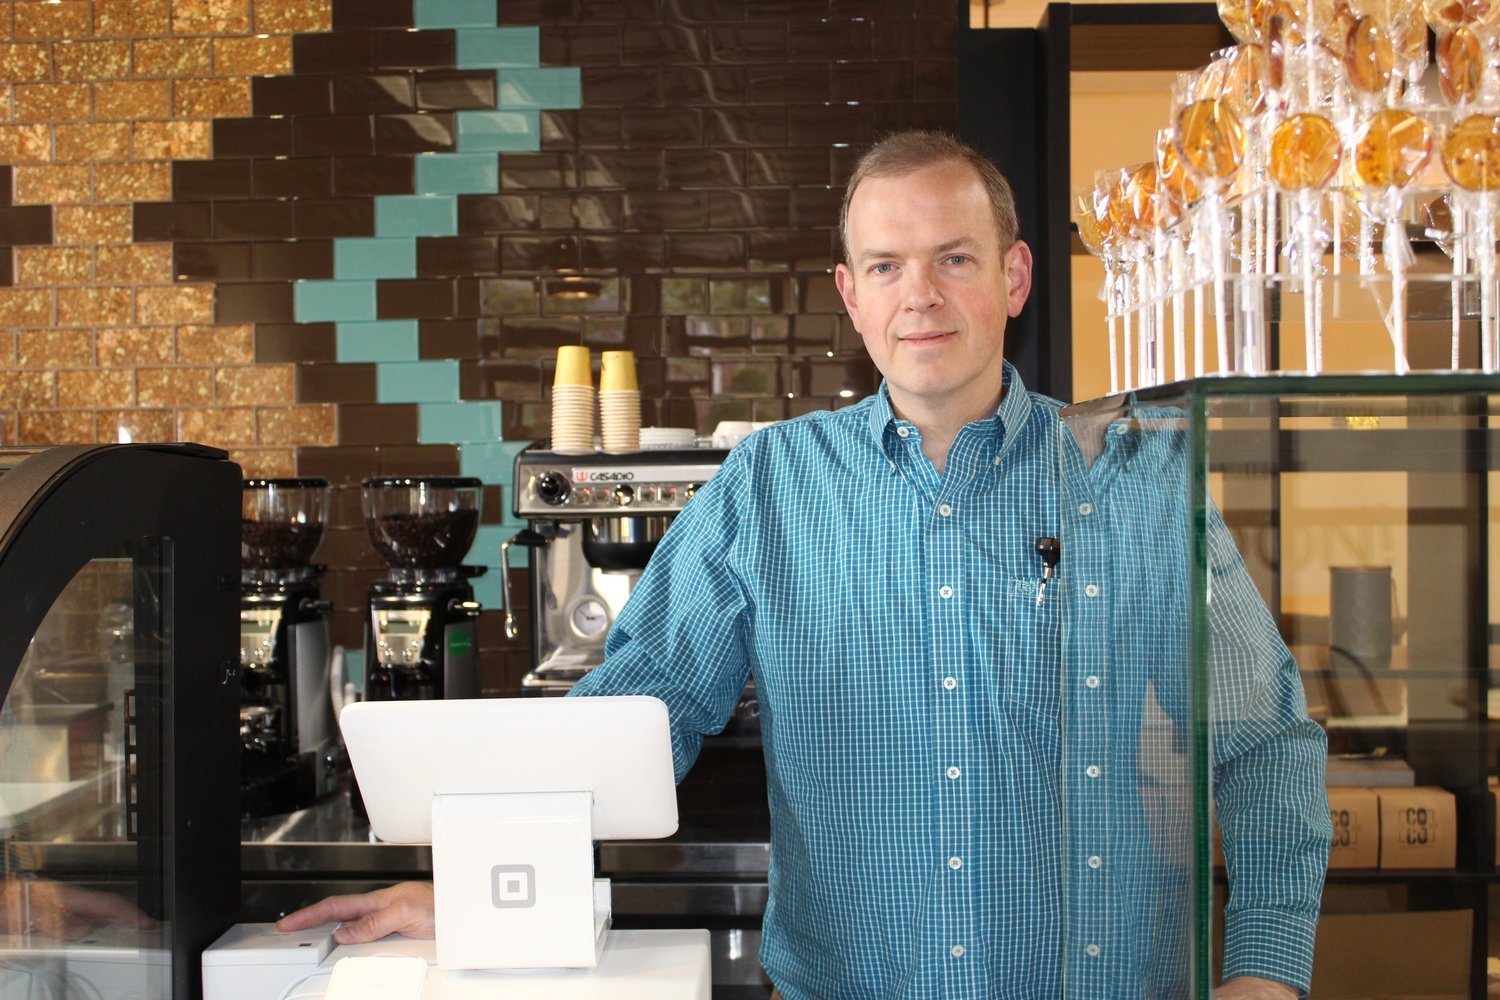 Terrence Kenniff, of Glen Head, is the candy-crazed connoisseur behind the area's first boutique chocolate and coffee shop.